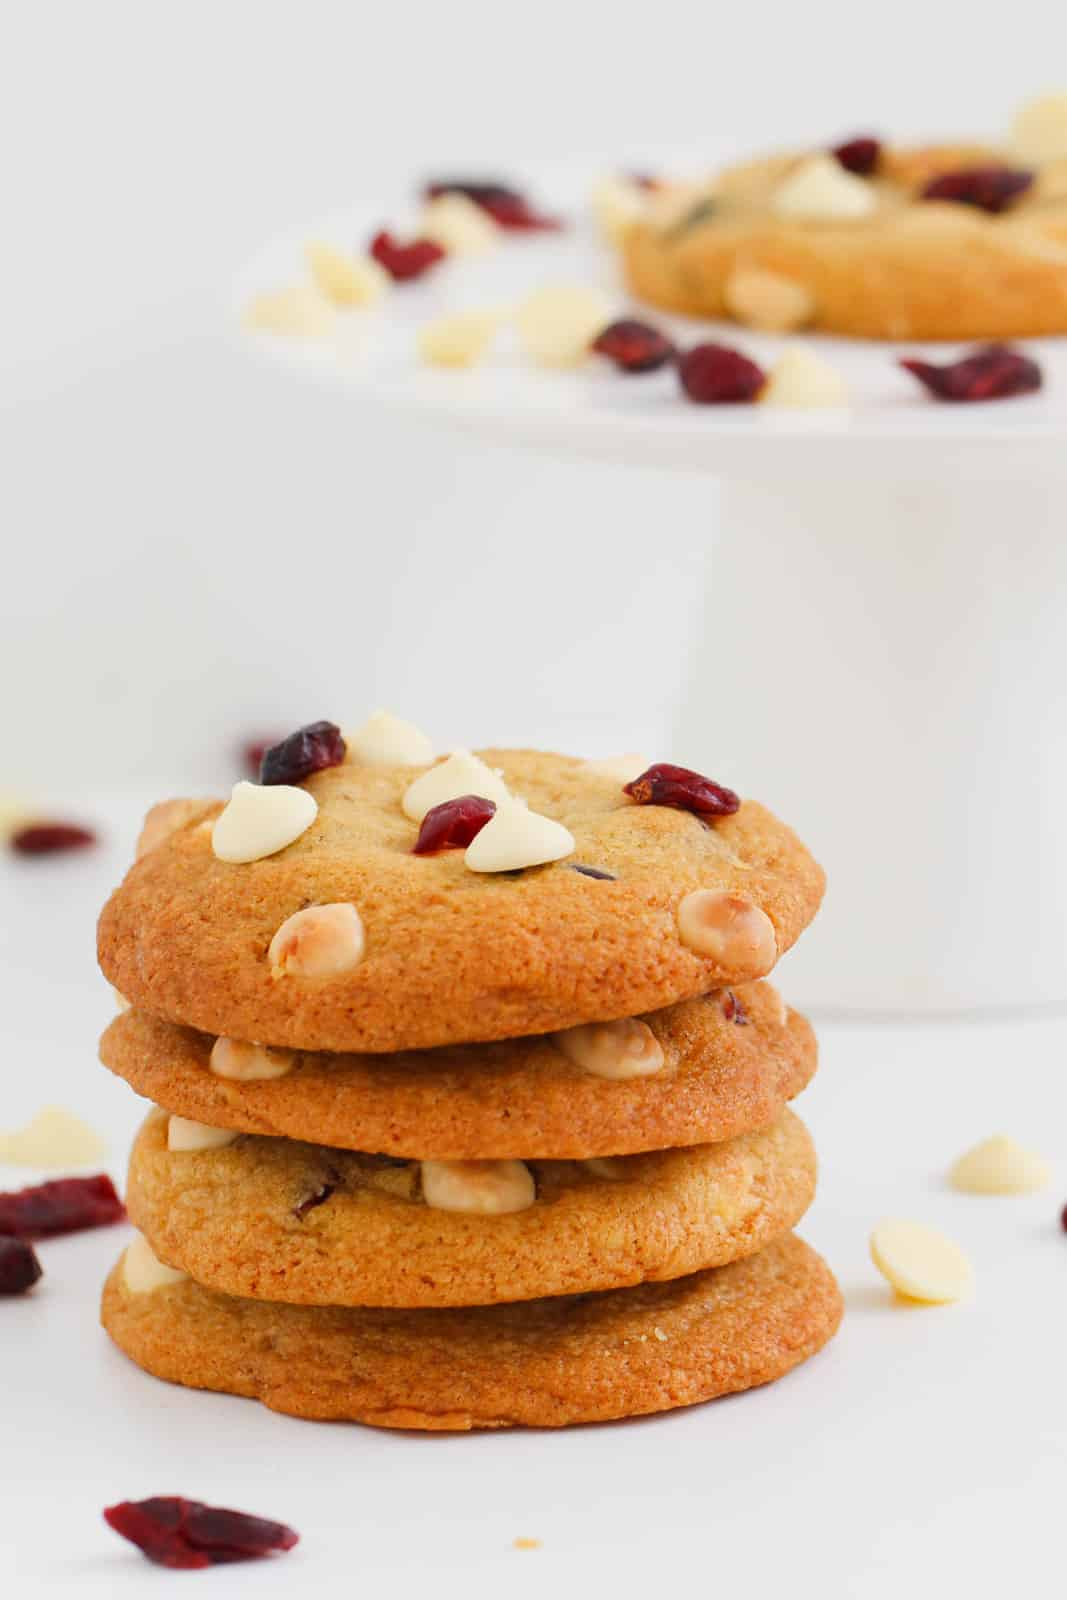 Four white chocolate and cranberry cookies stacked in a pile with white chocolate chips and dried cranberries scattered around